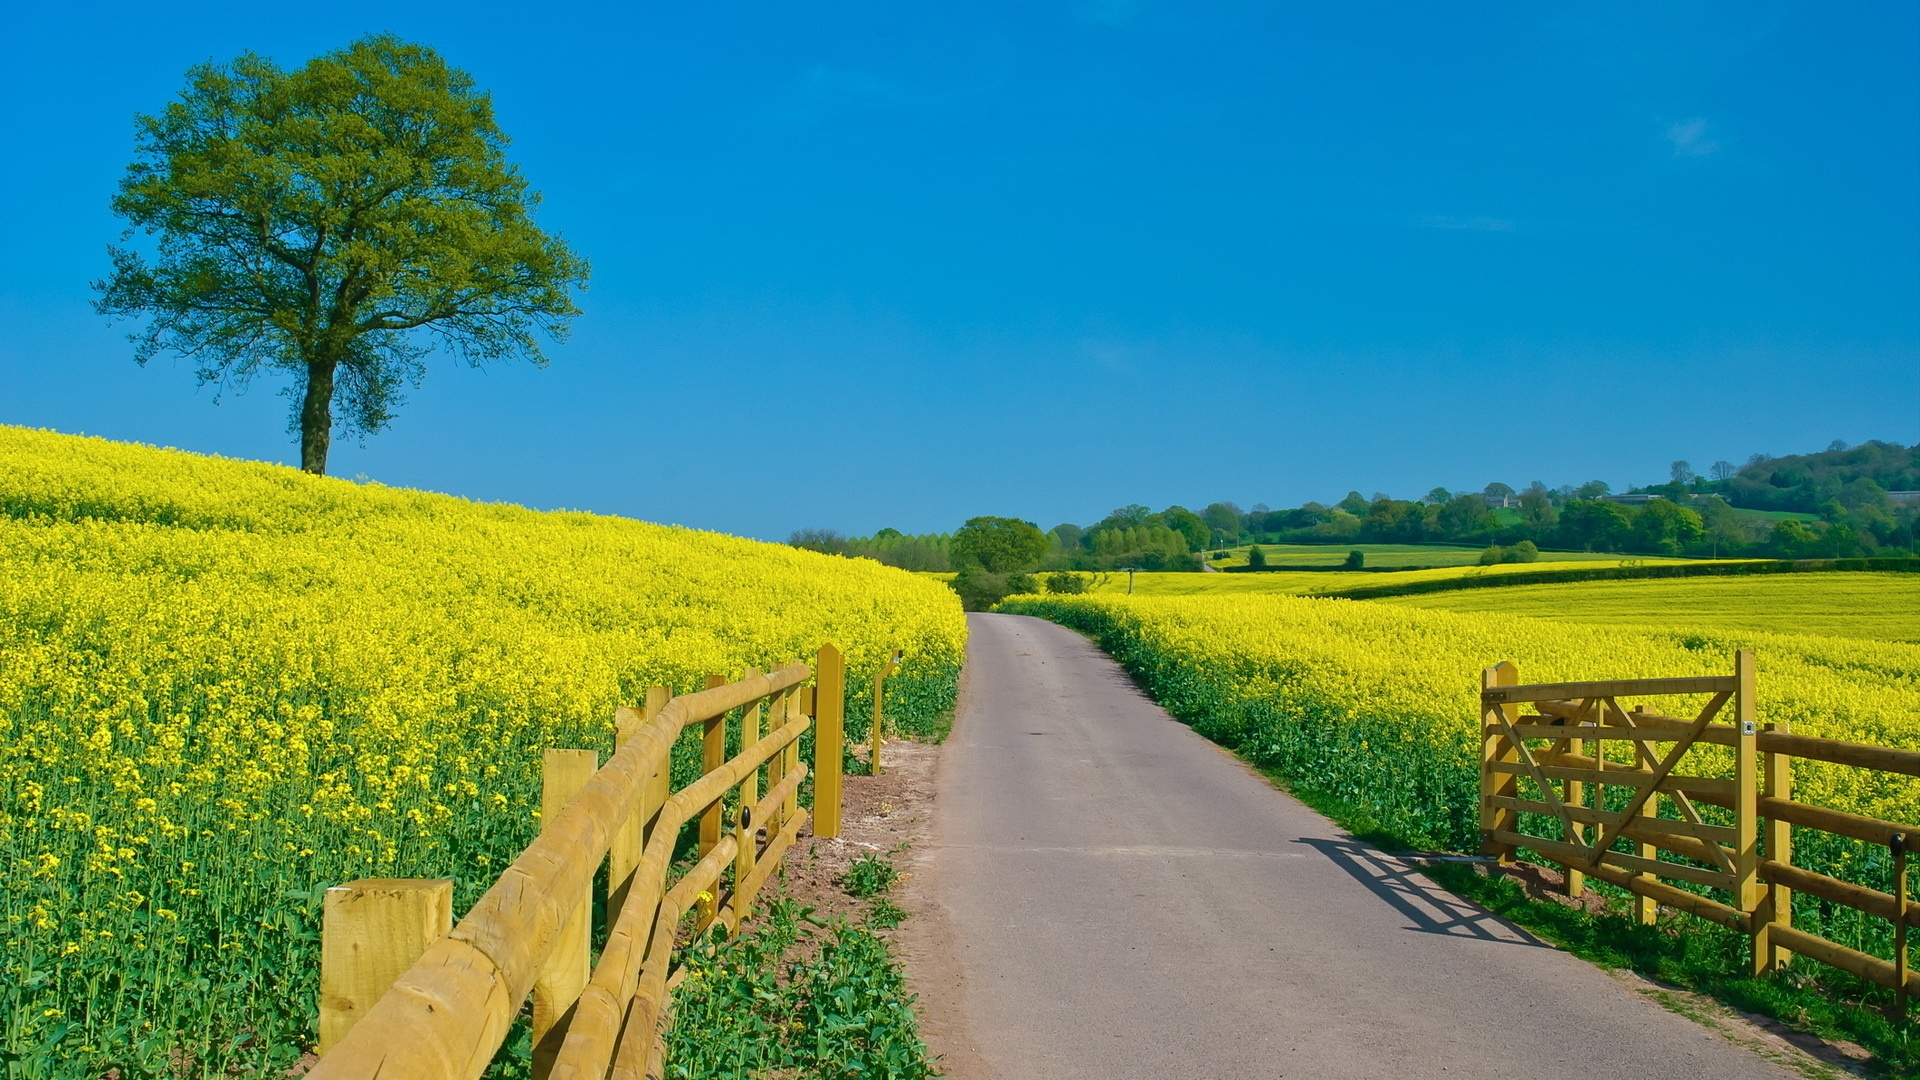 Get The Latest Road Protection Summer News Pictures And Videos Learn All About From Wallpapers4uorg Your Wallpaper